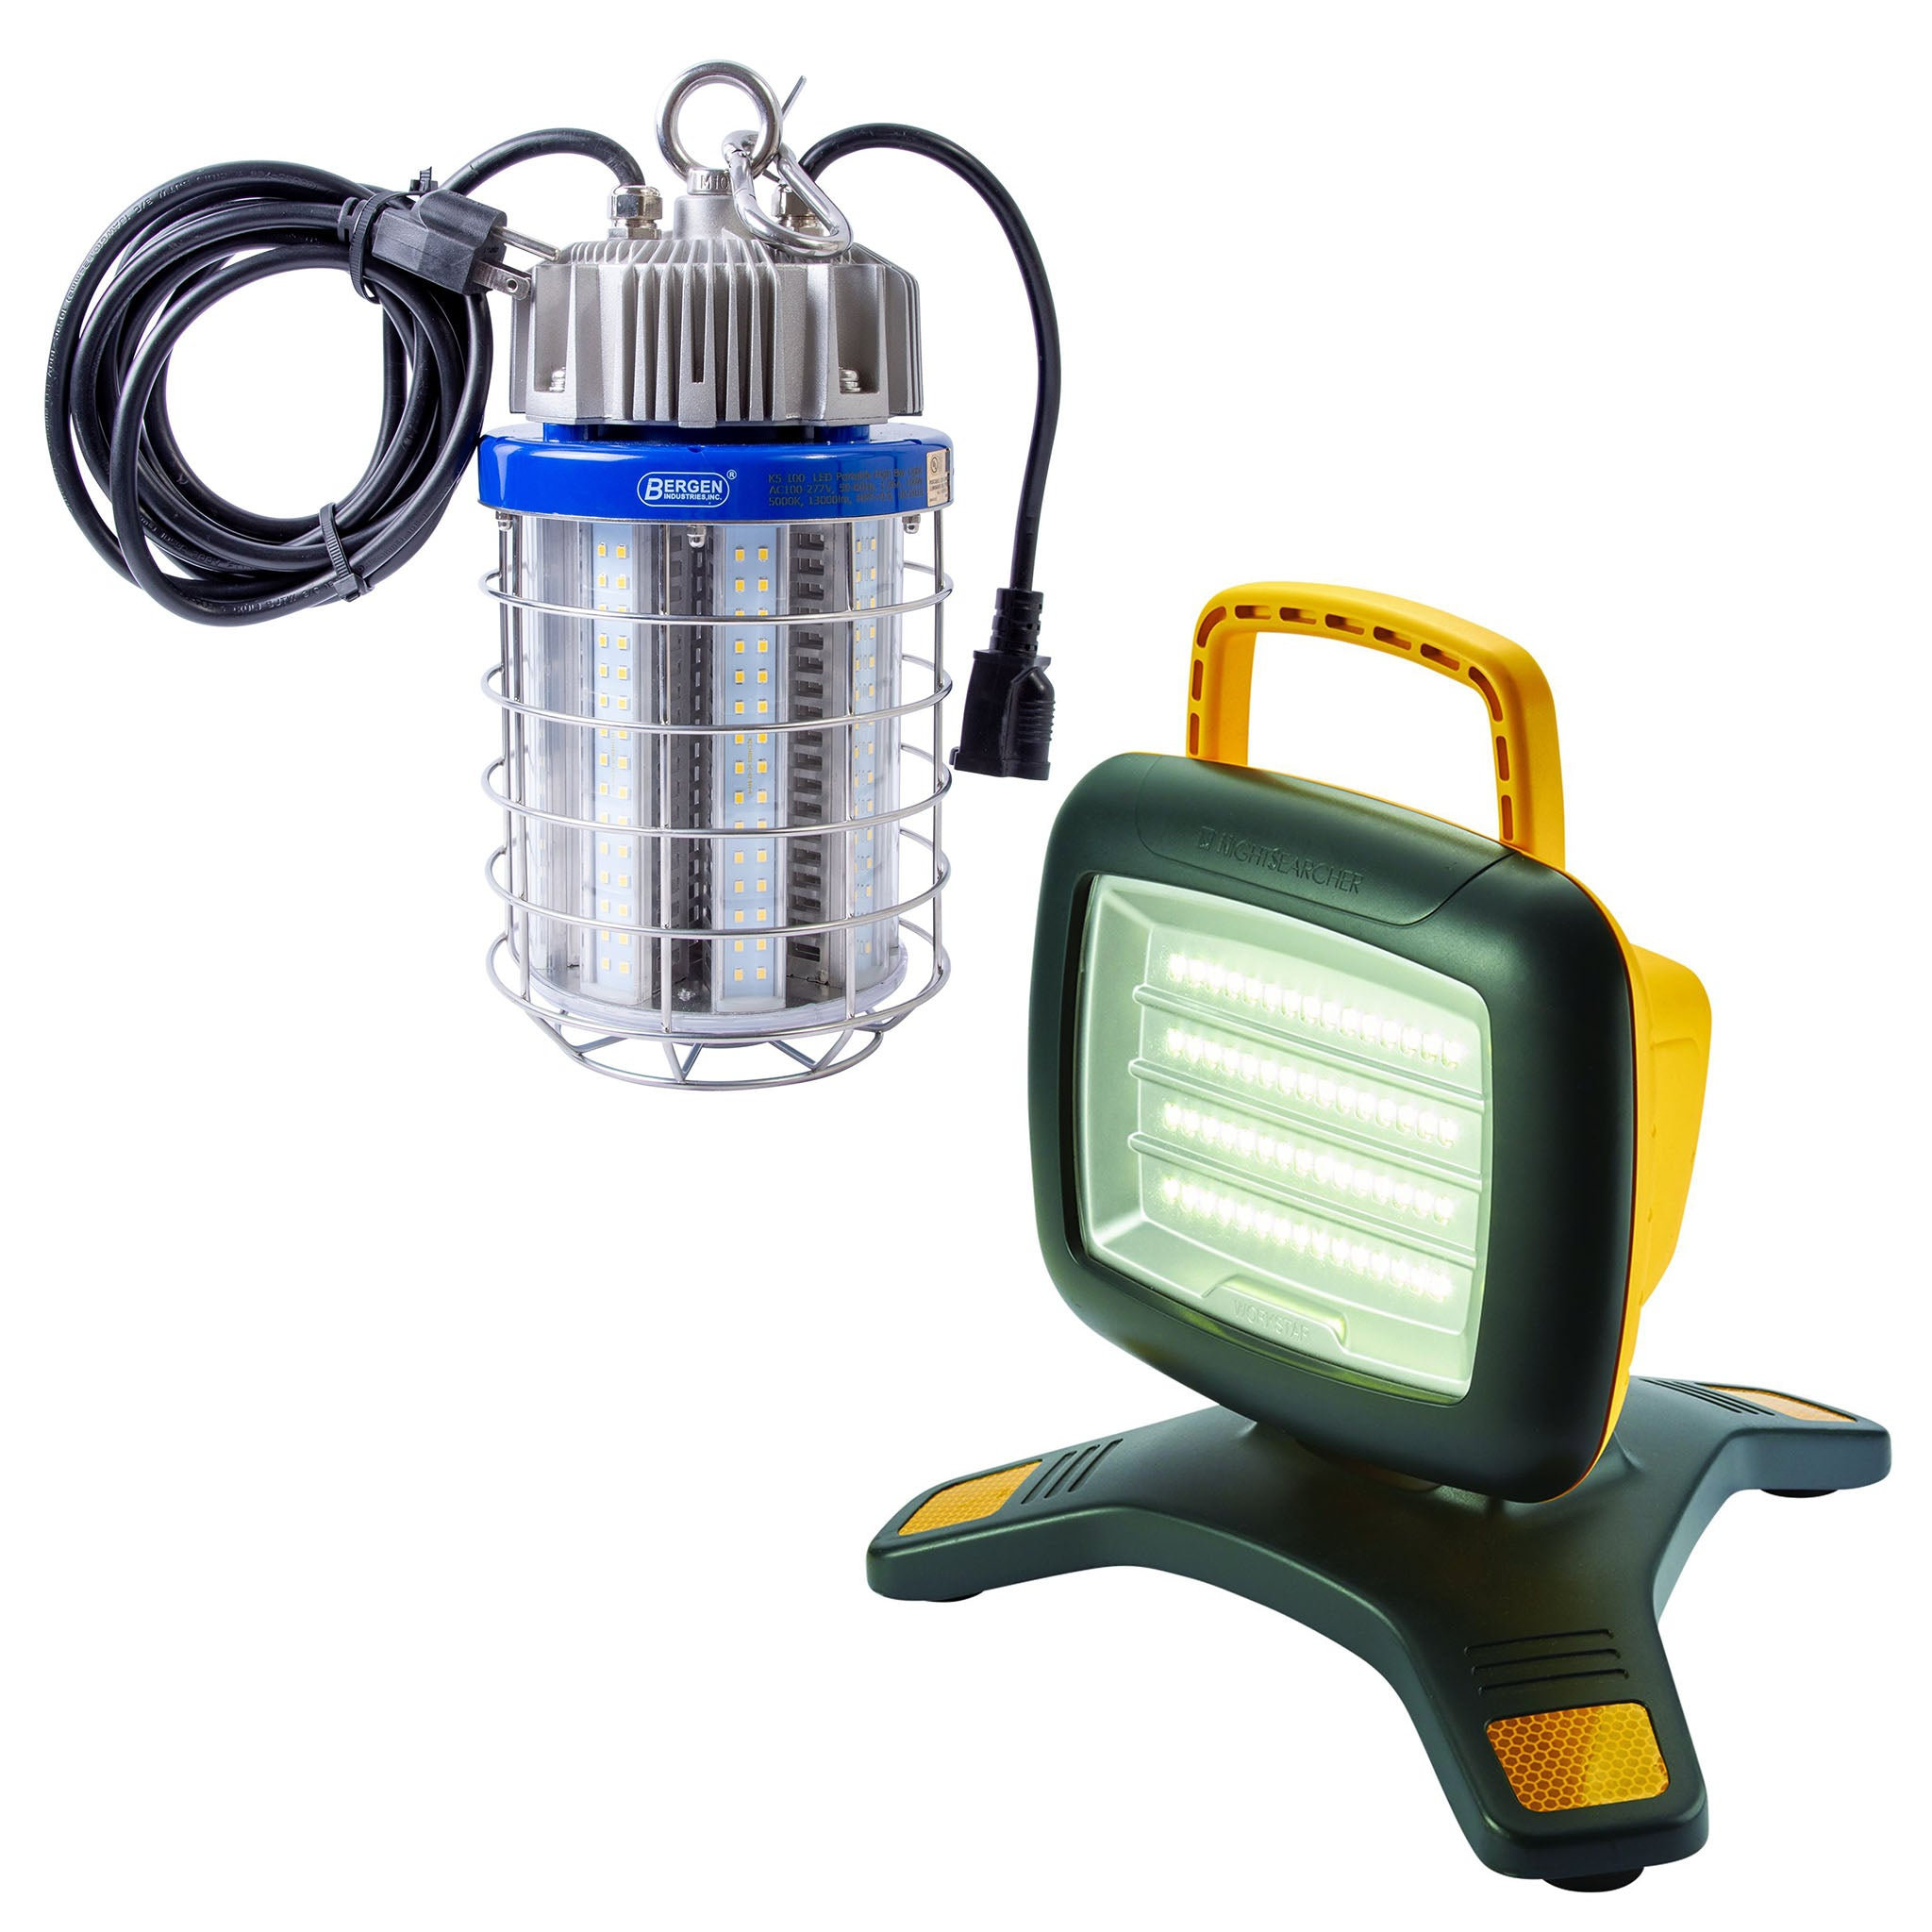 Construction / Portable Lighting